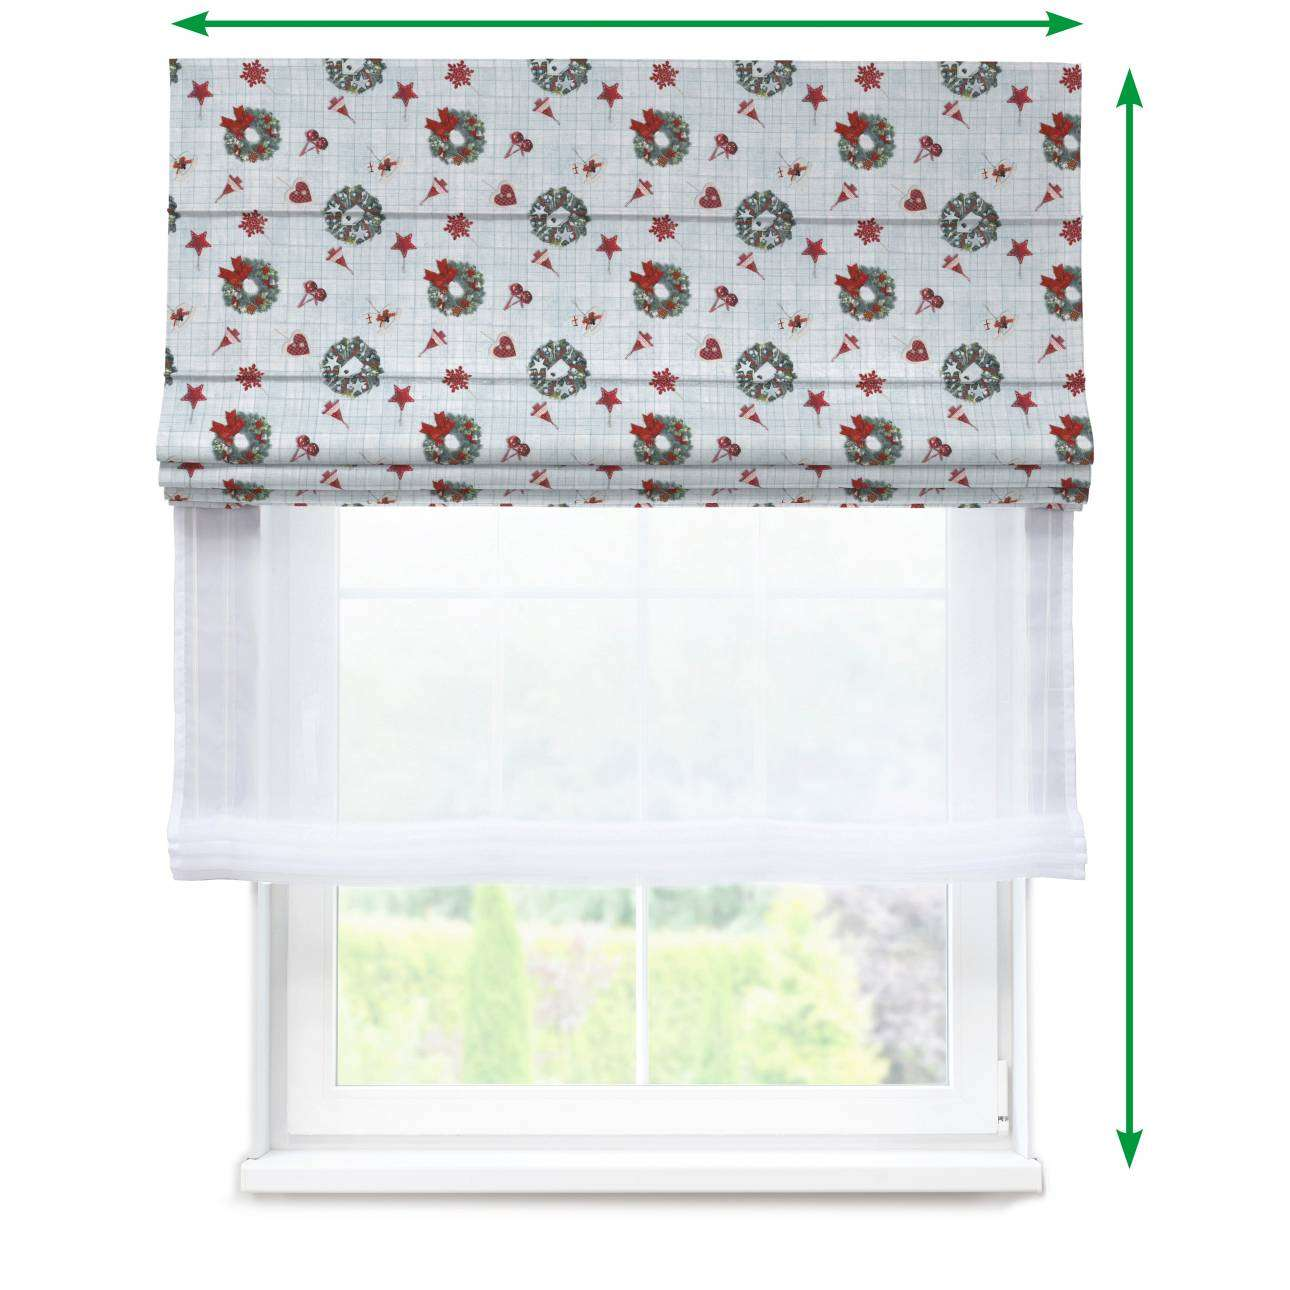 Voile and fabric roman blind (DUO II) in collection Christmas, fabric: 629-26